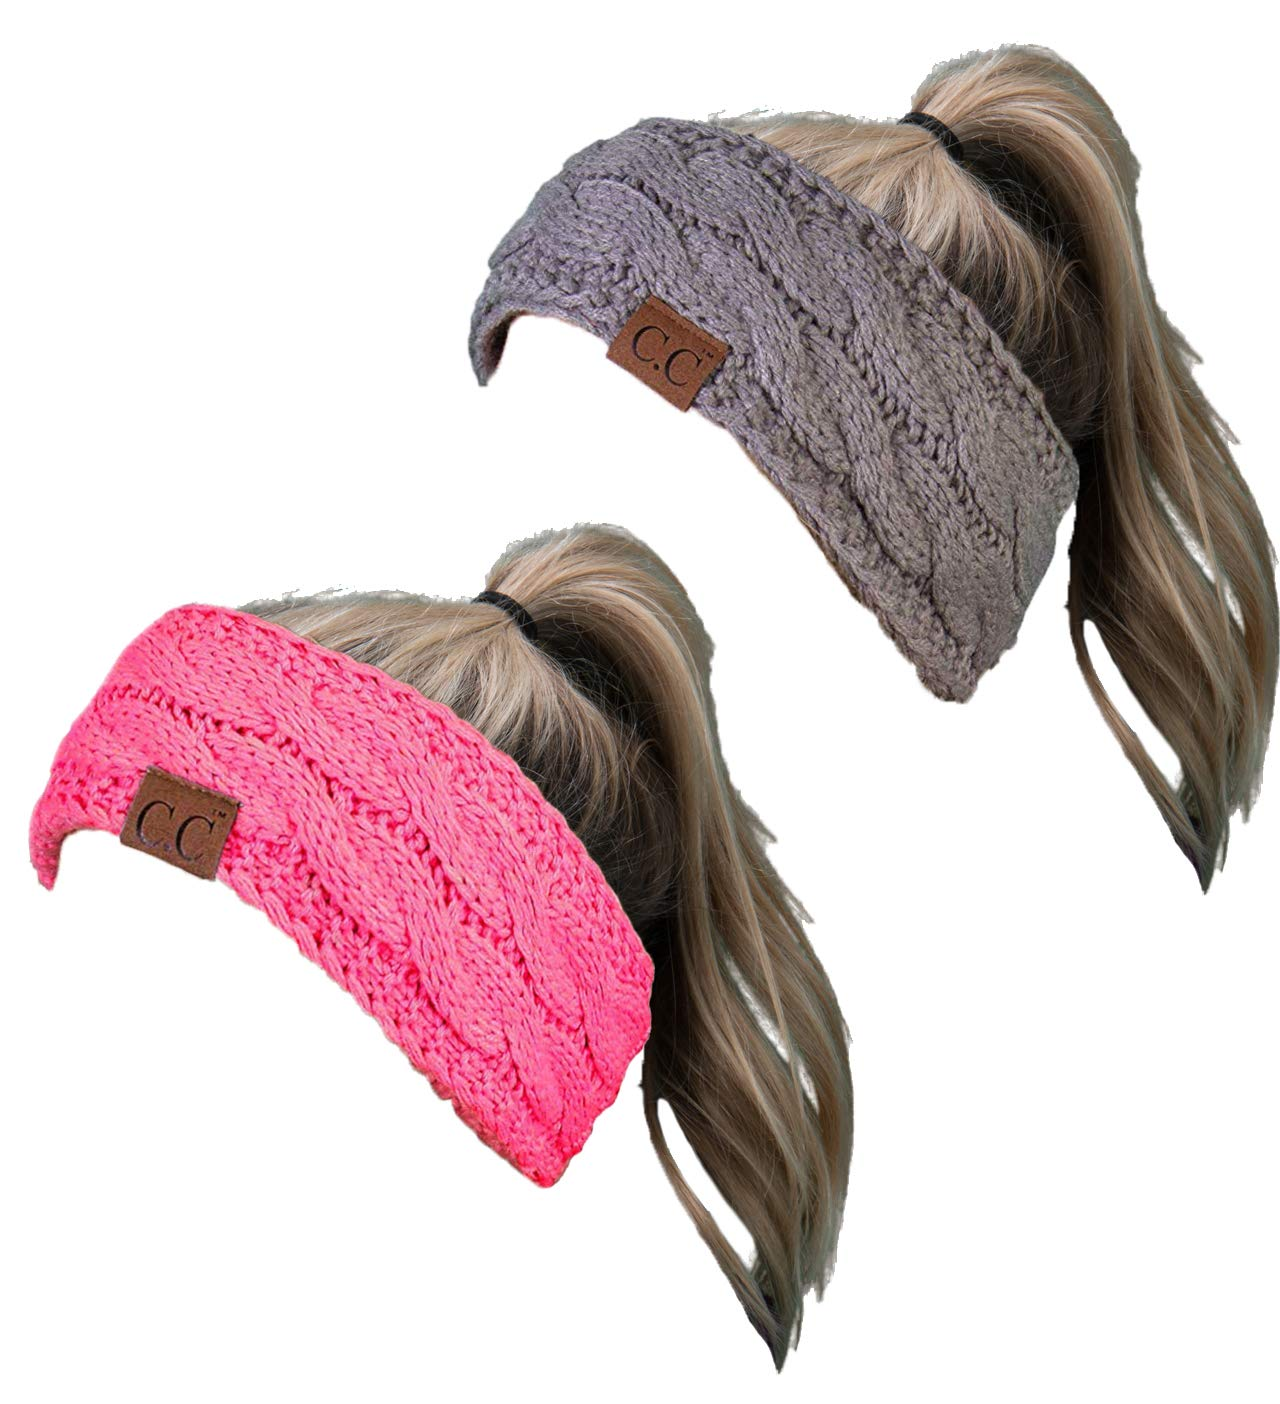 HW-6033-2-20a-7680 Headwrap Bundle - Solid Dove Grey & Candy Pink (2 Pack)